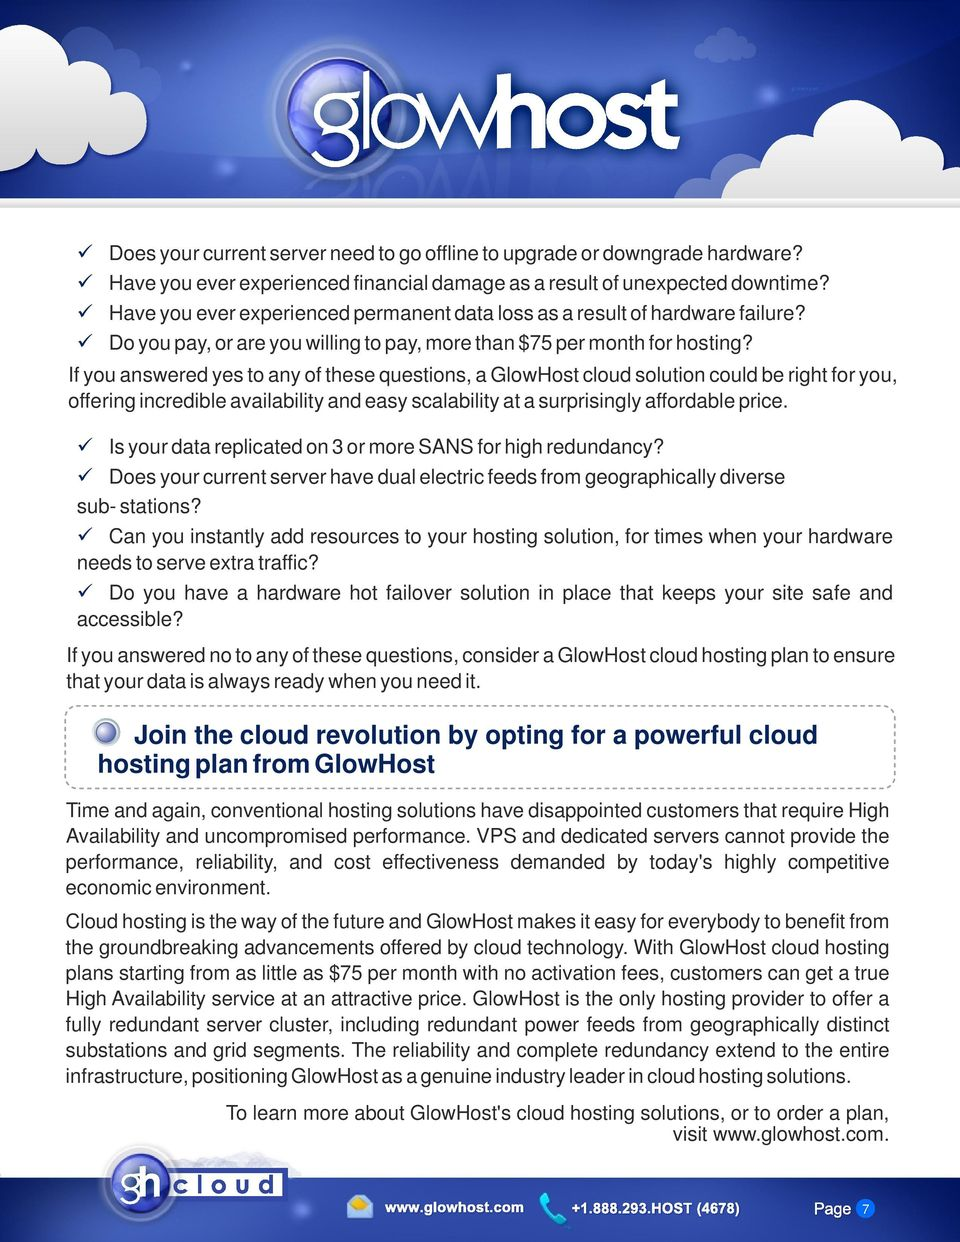 If you answered yes to any of these questions, a GlowHost cloud solution could be right for you, offering incredible availability and easy scalability at a surprisingly affordable price.